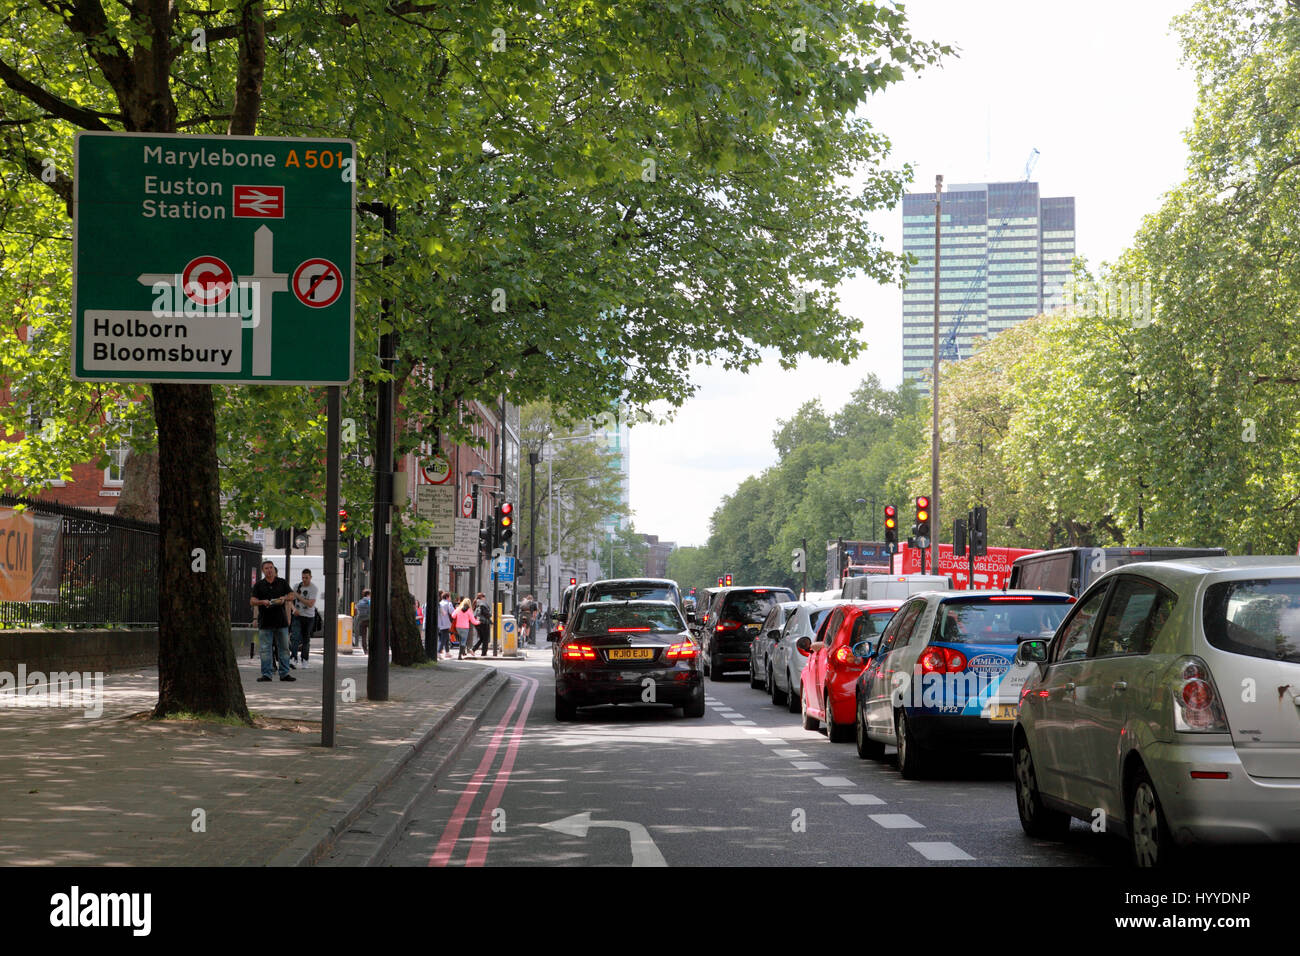 Traffic congestion on the Euston Road, near Euston station, London - Stock Image